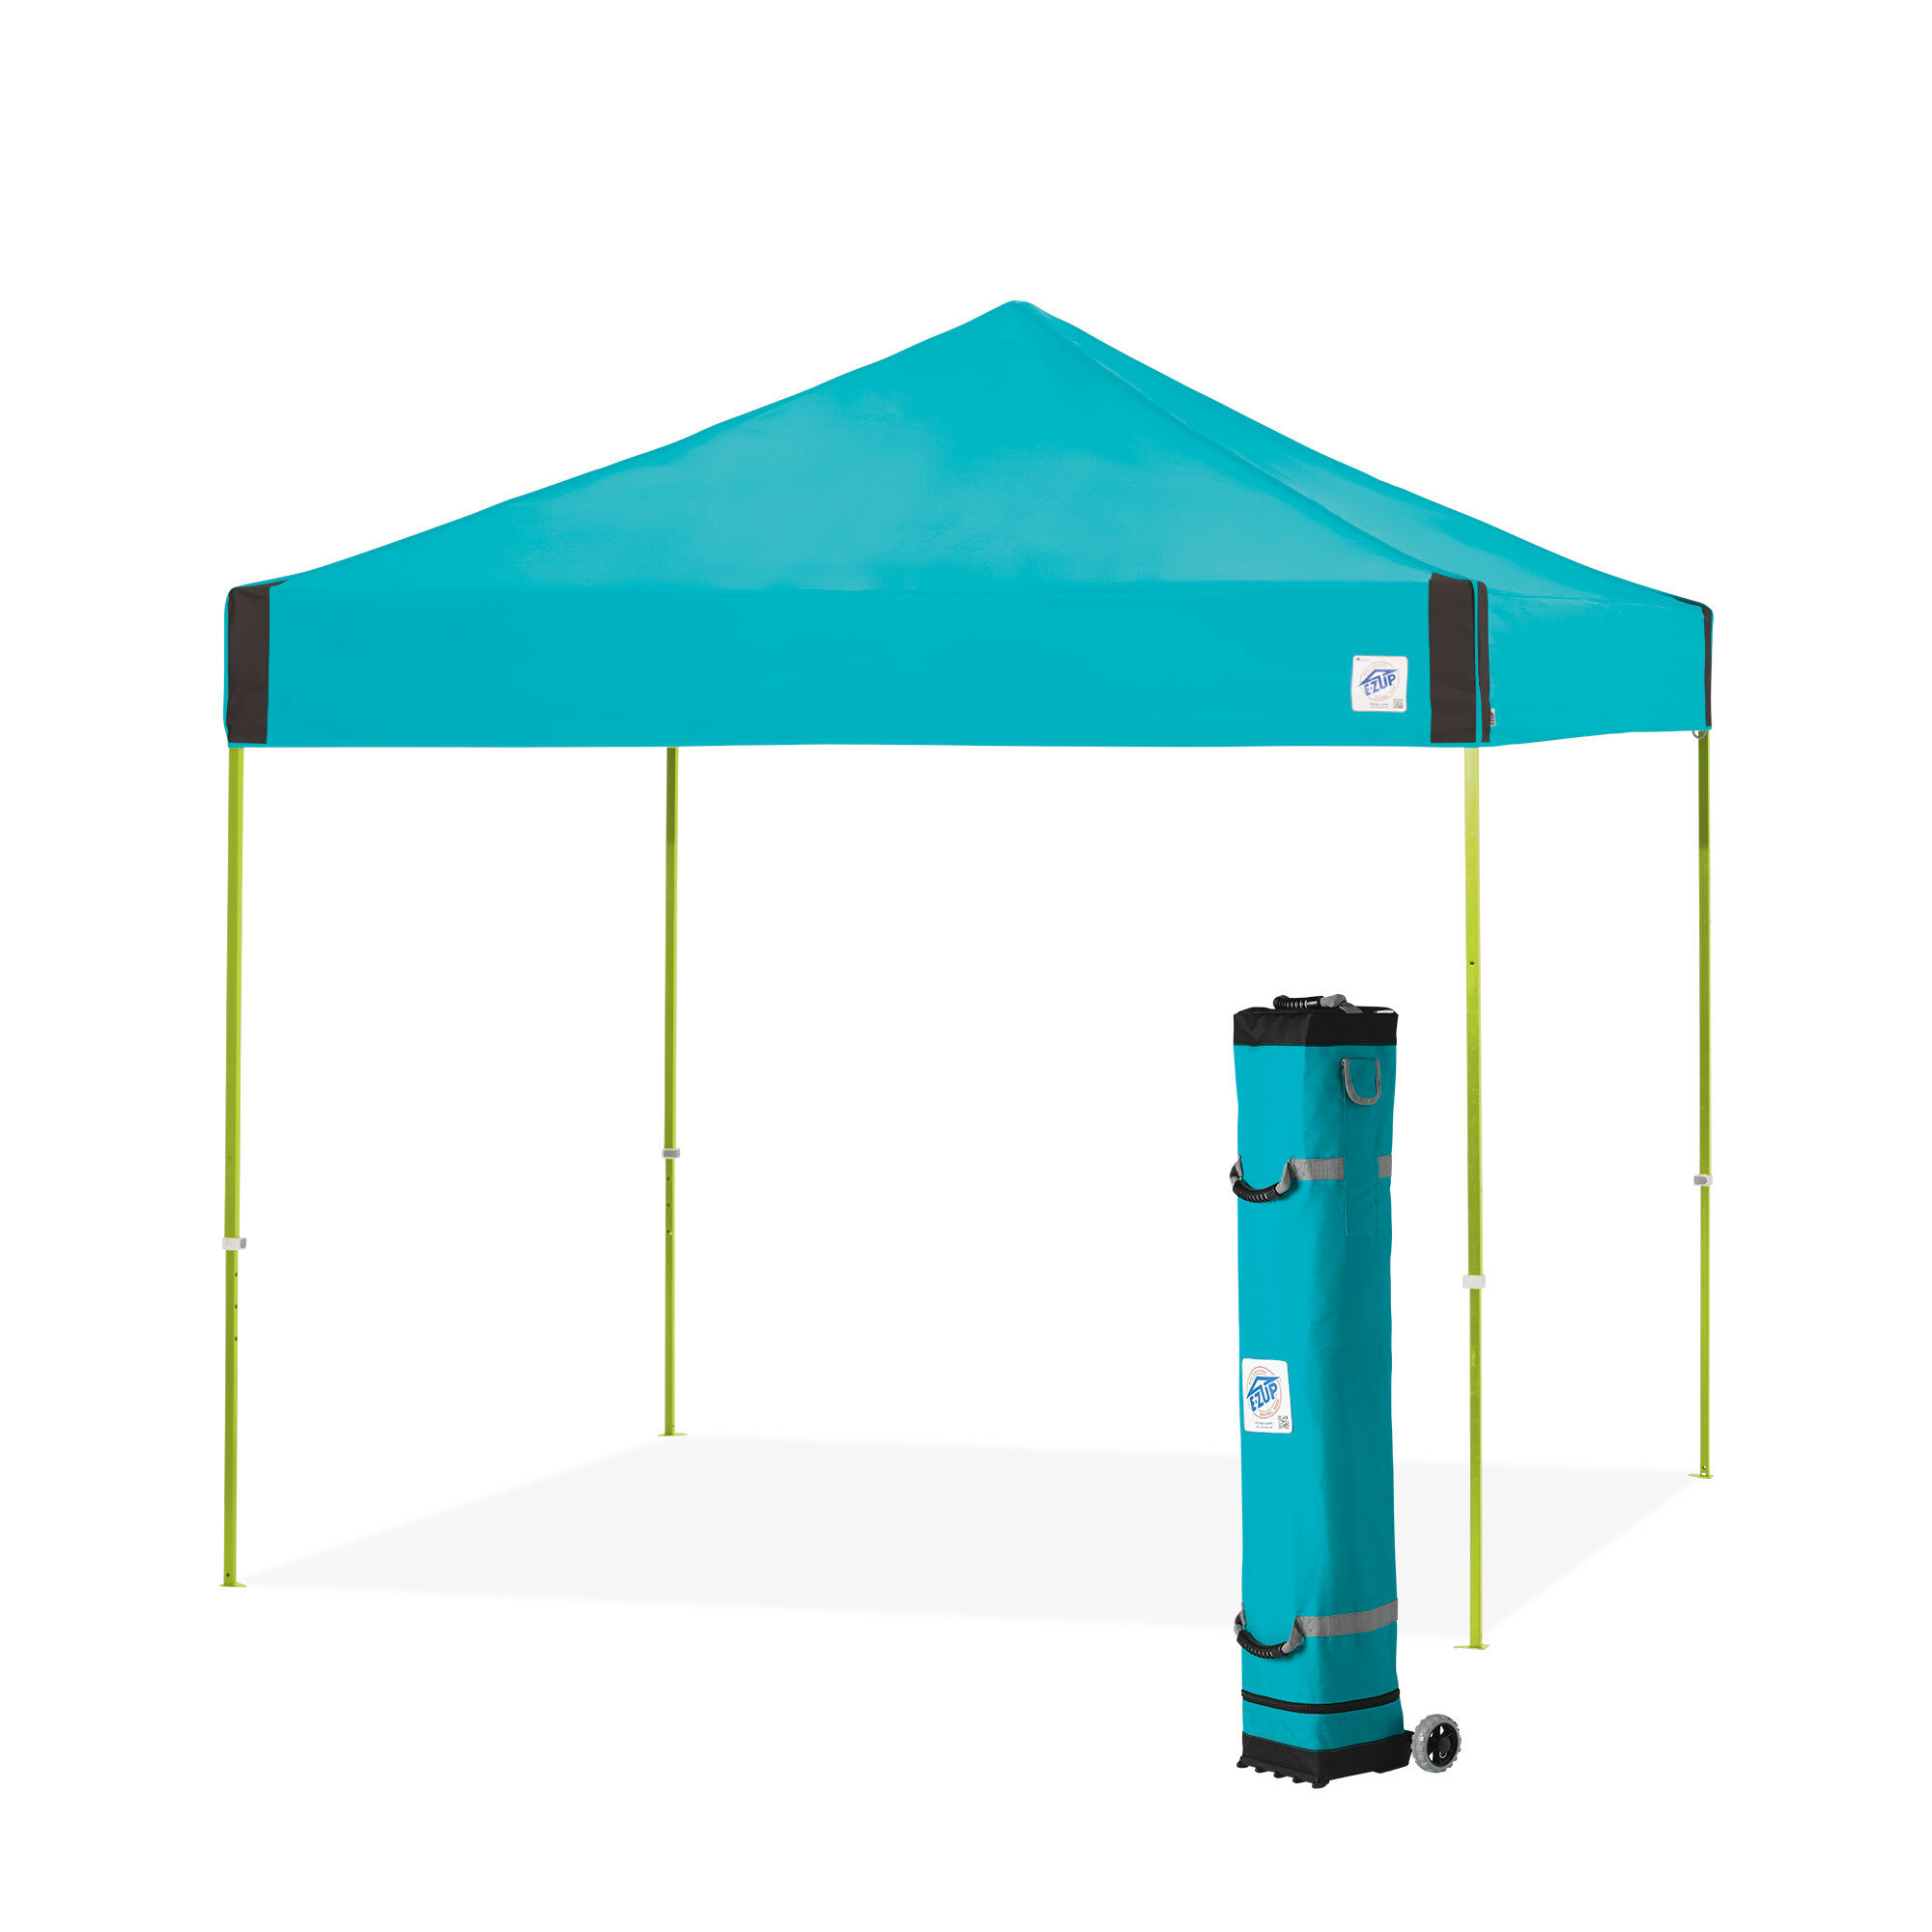 CORE Instant Canopy 10 x 10 Foot Pop Up Shade Canopy Shelter Tent Open Box